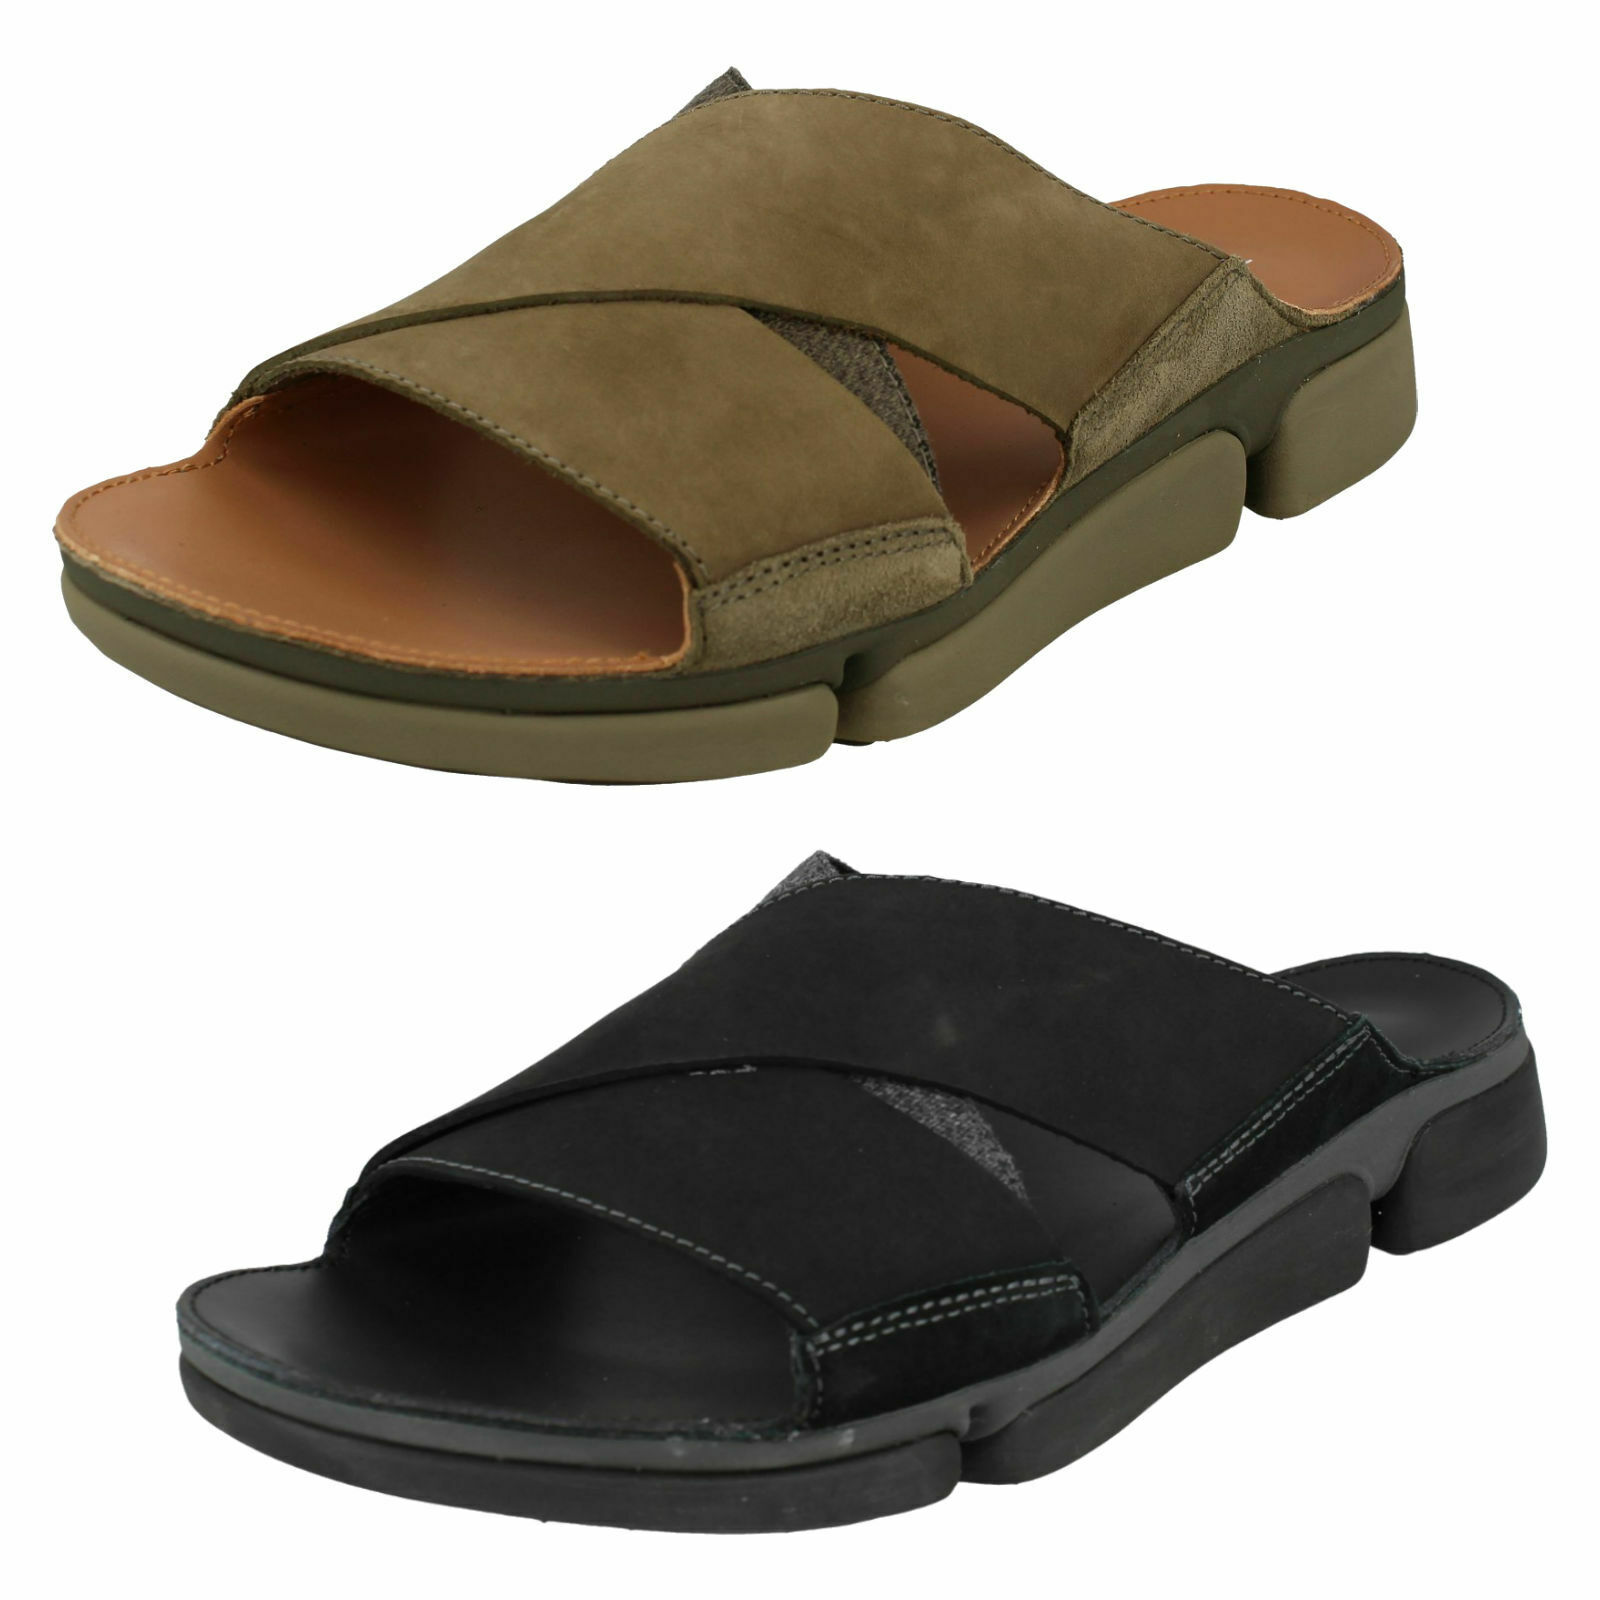 Clarks men leather cross tri Cove slippers sandals fit size summer